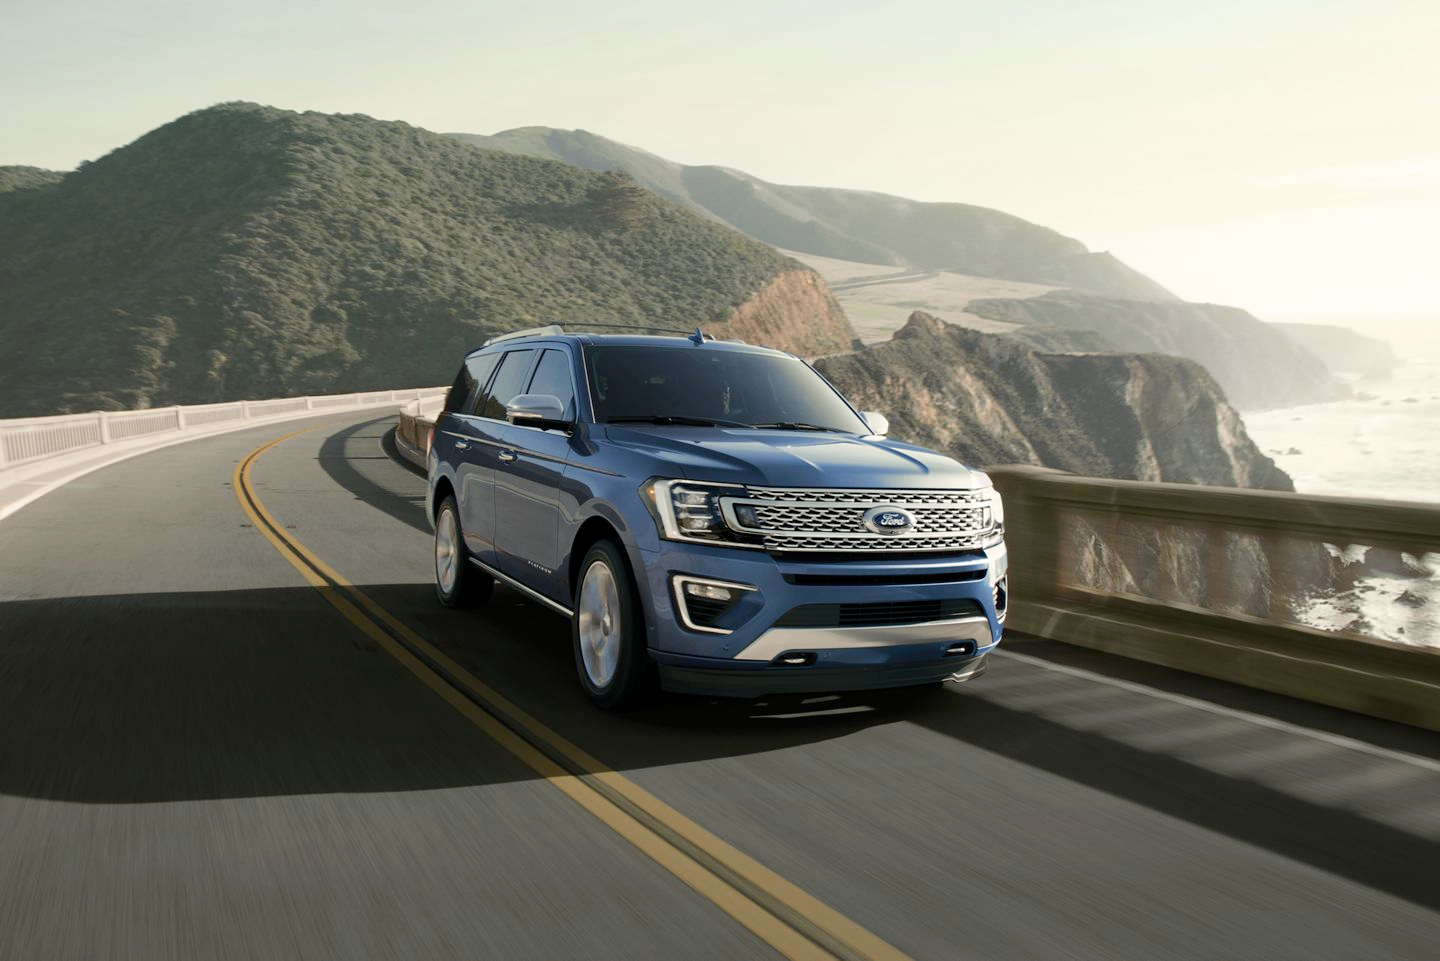 2019 Ford Expedition - Exterior